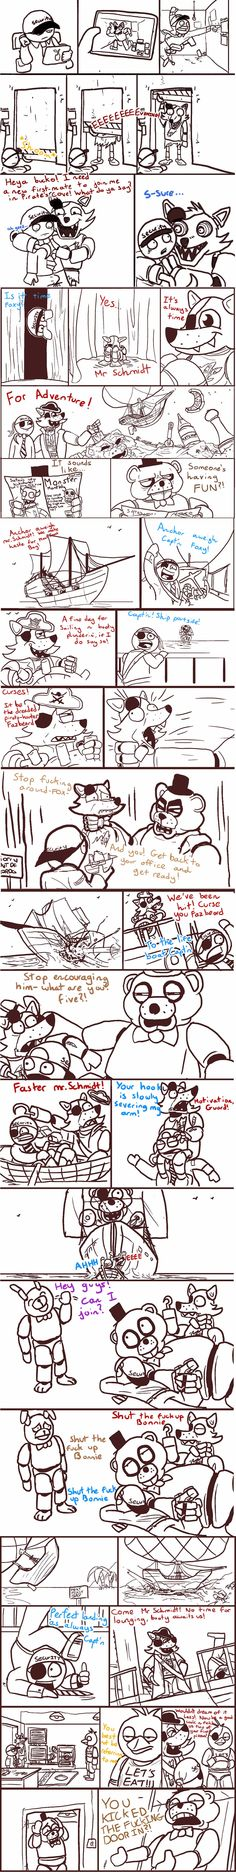 Five Nights at Freddy's Comp